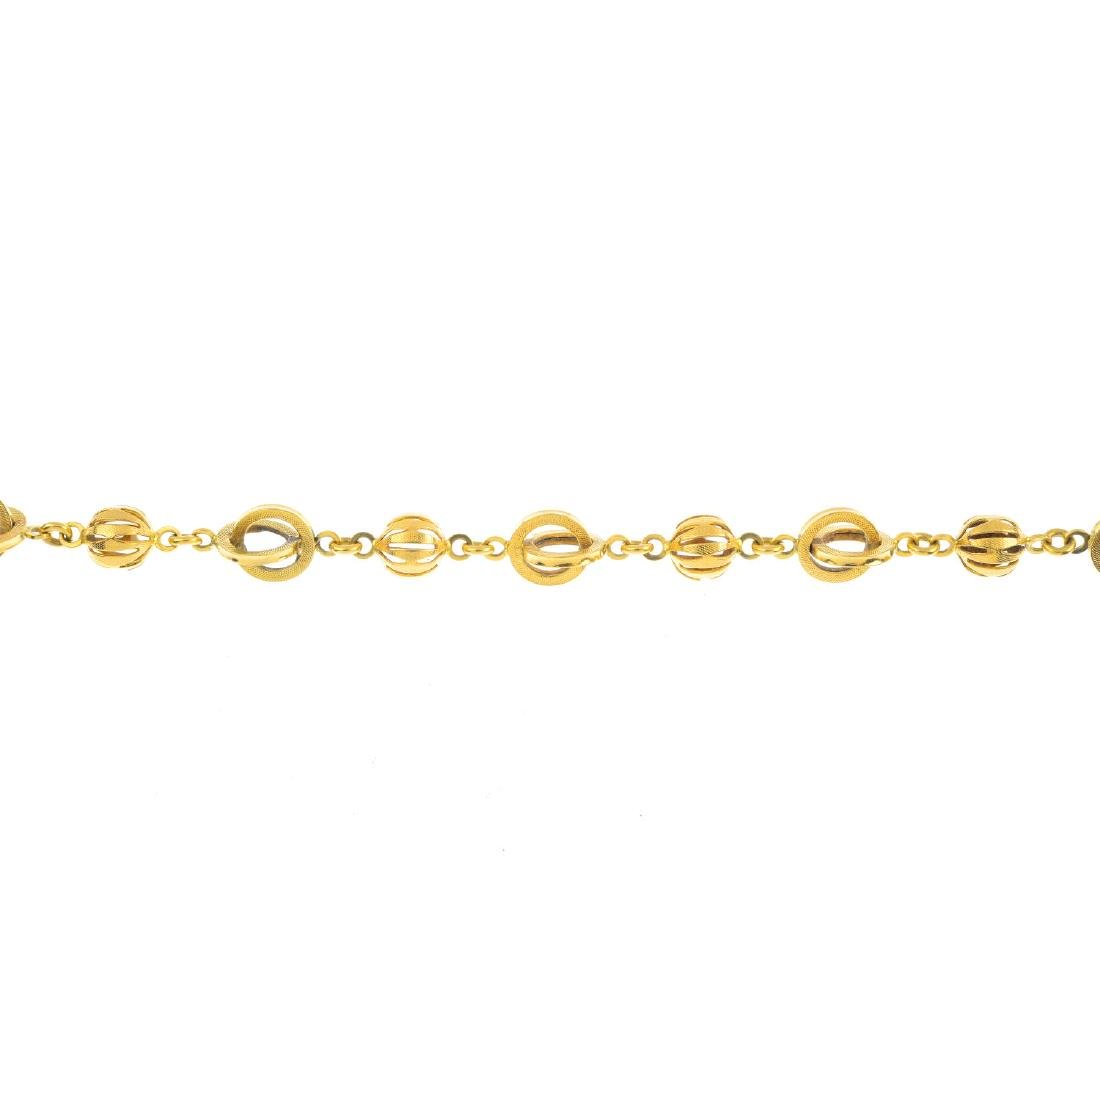 A fancy-link bracelet. Designed as a series of